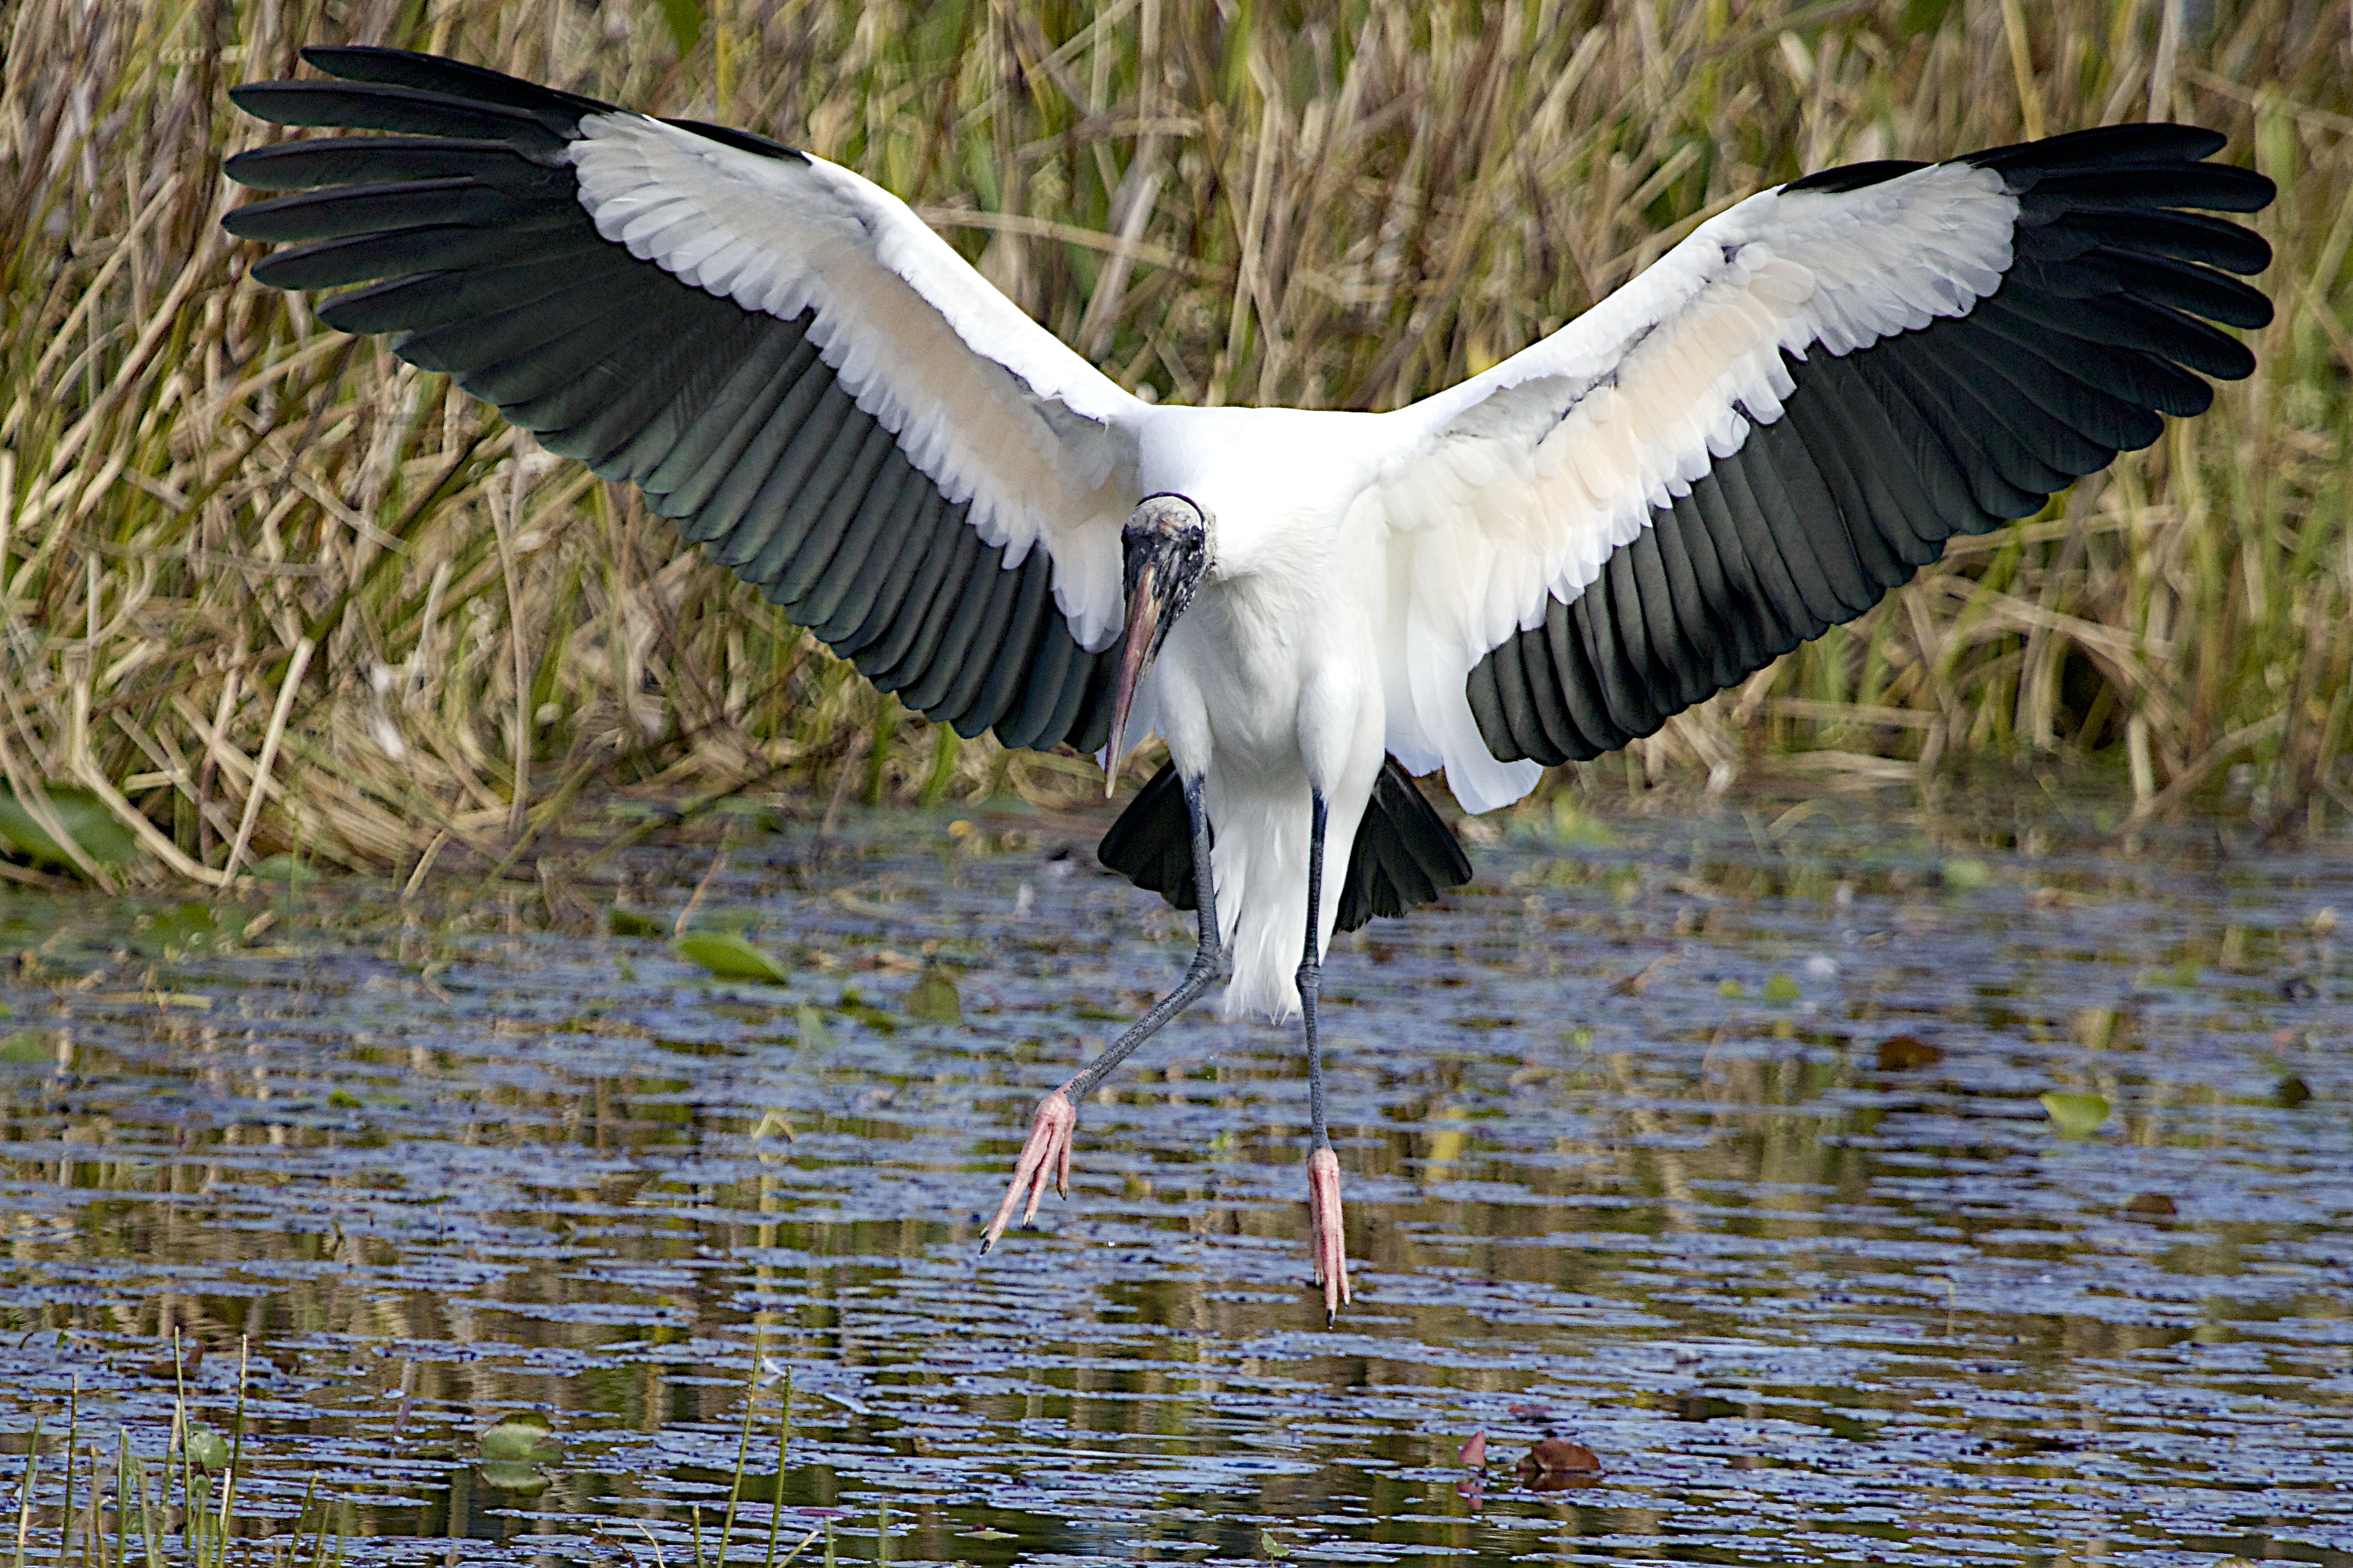 Sally Jewell >> Recovering Wood Stork down-listed from Endangered to Threatened - BirdWatching